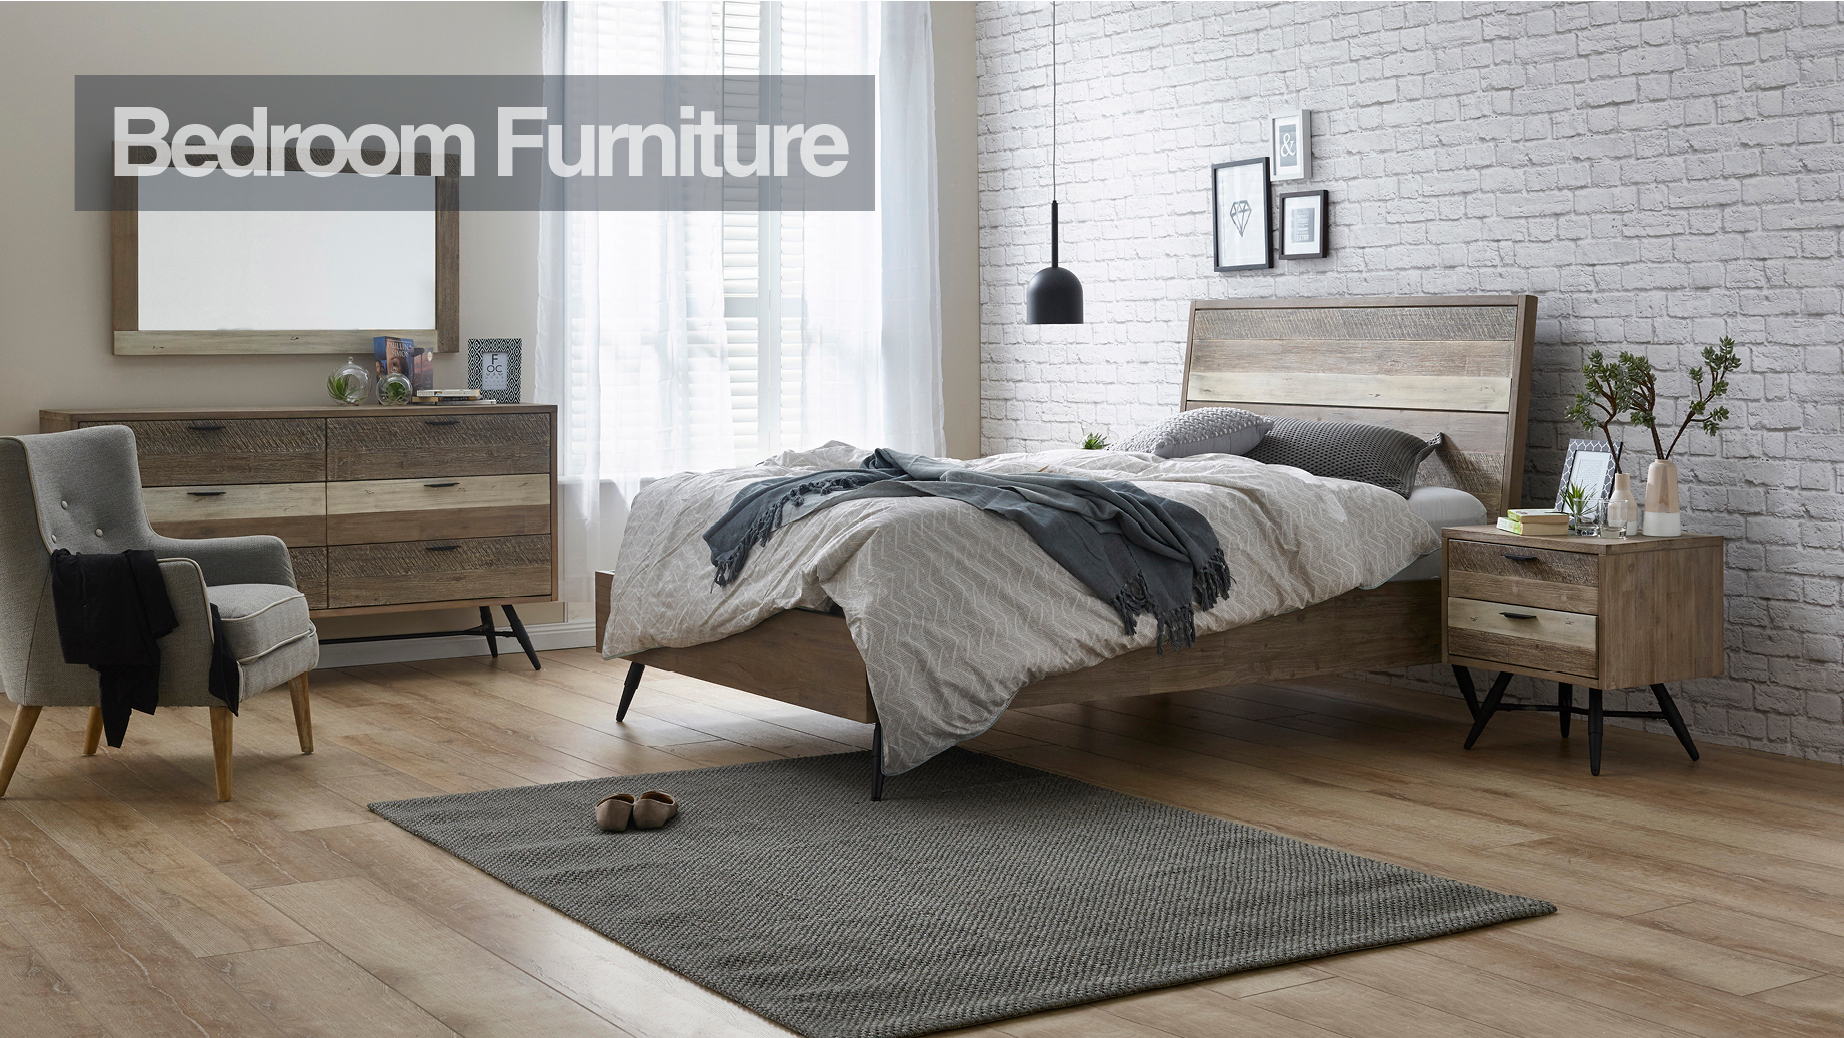 bedroom-furniture-1.jpg